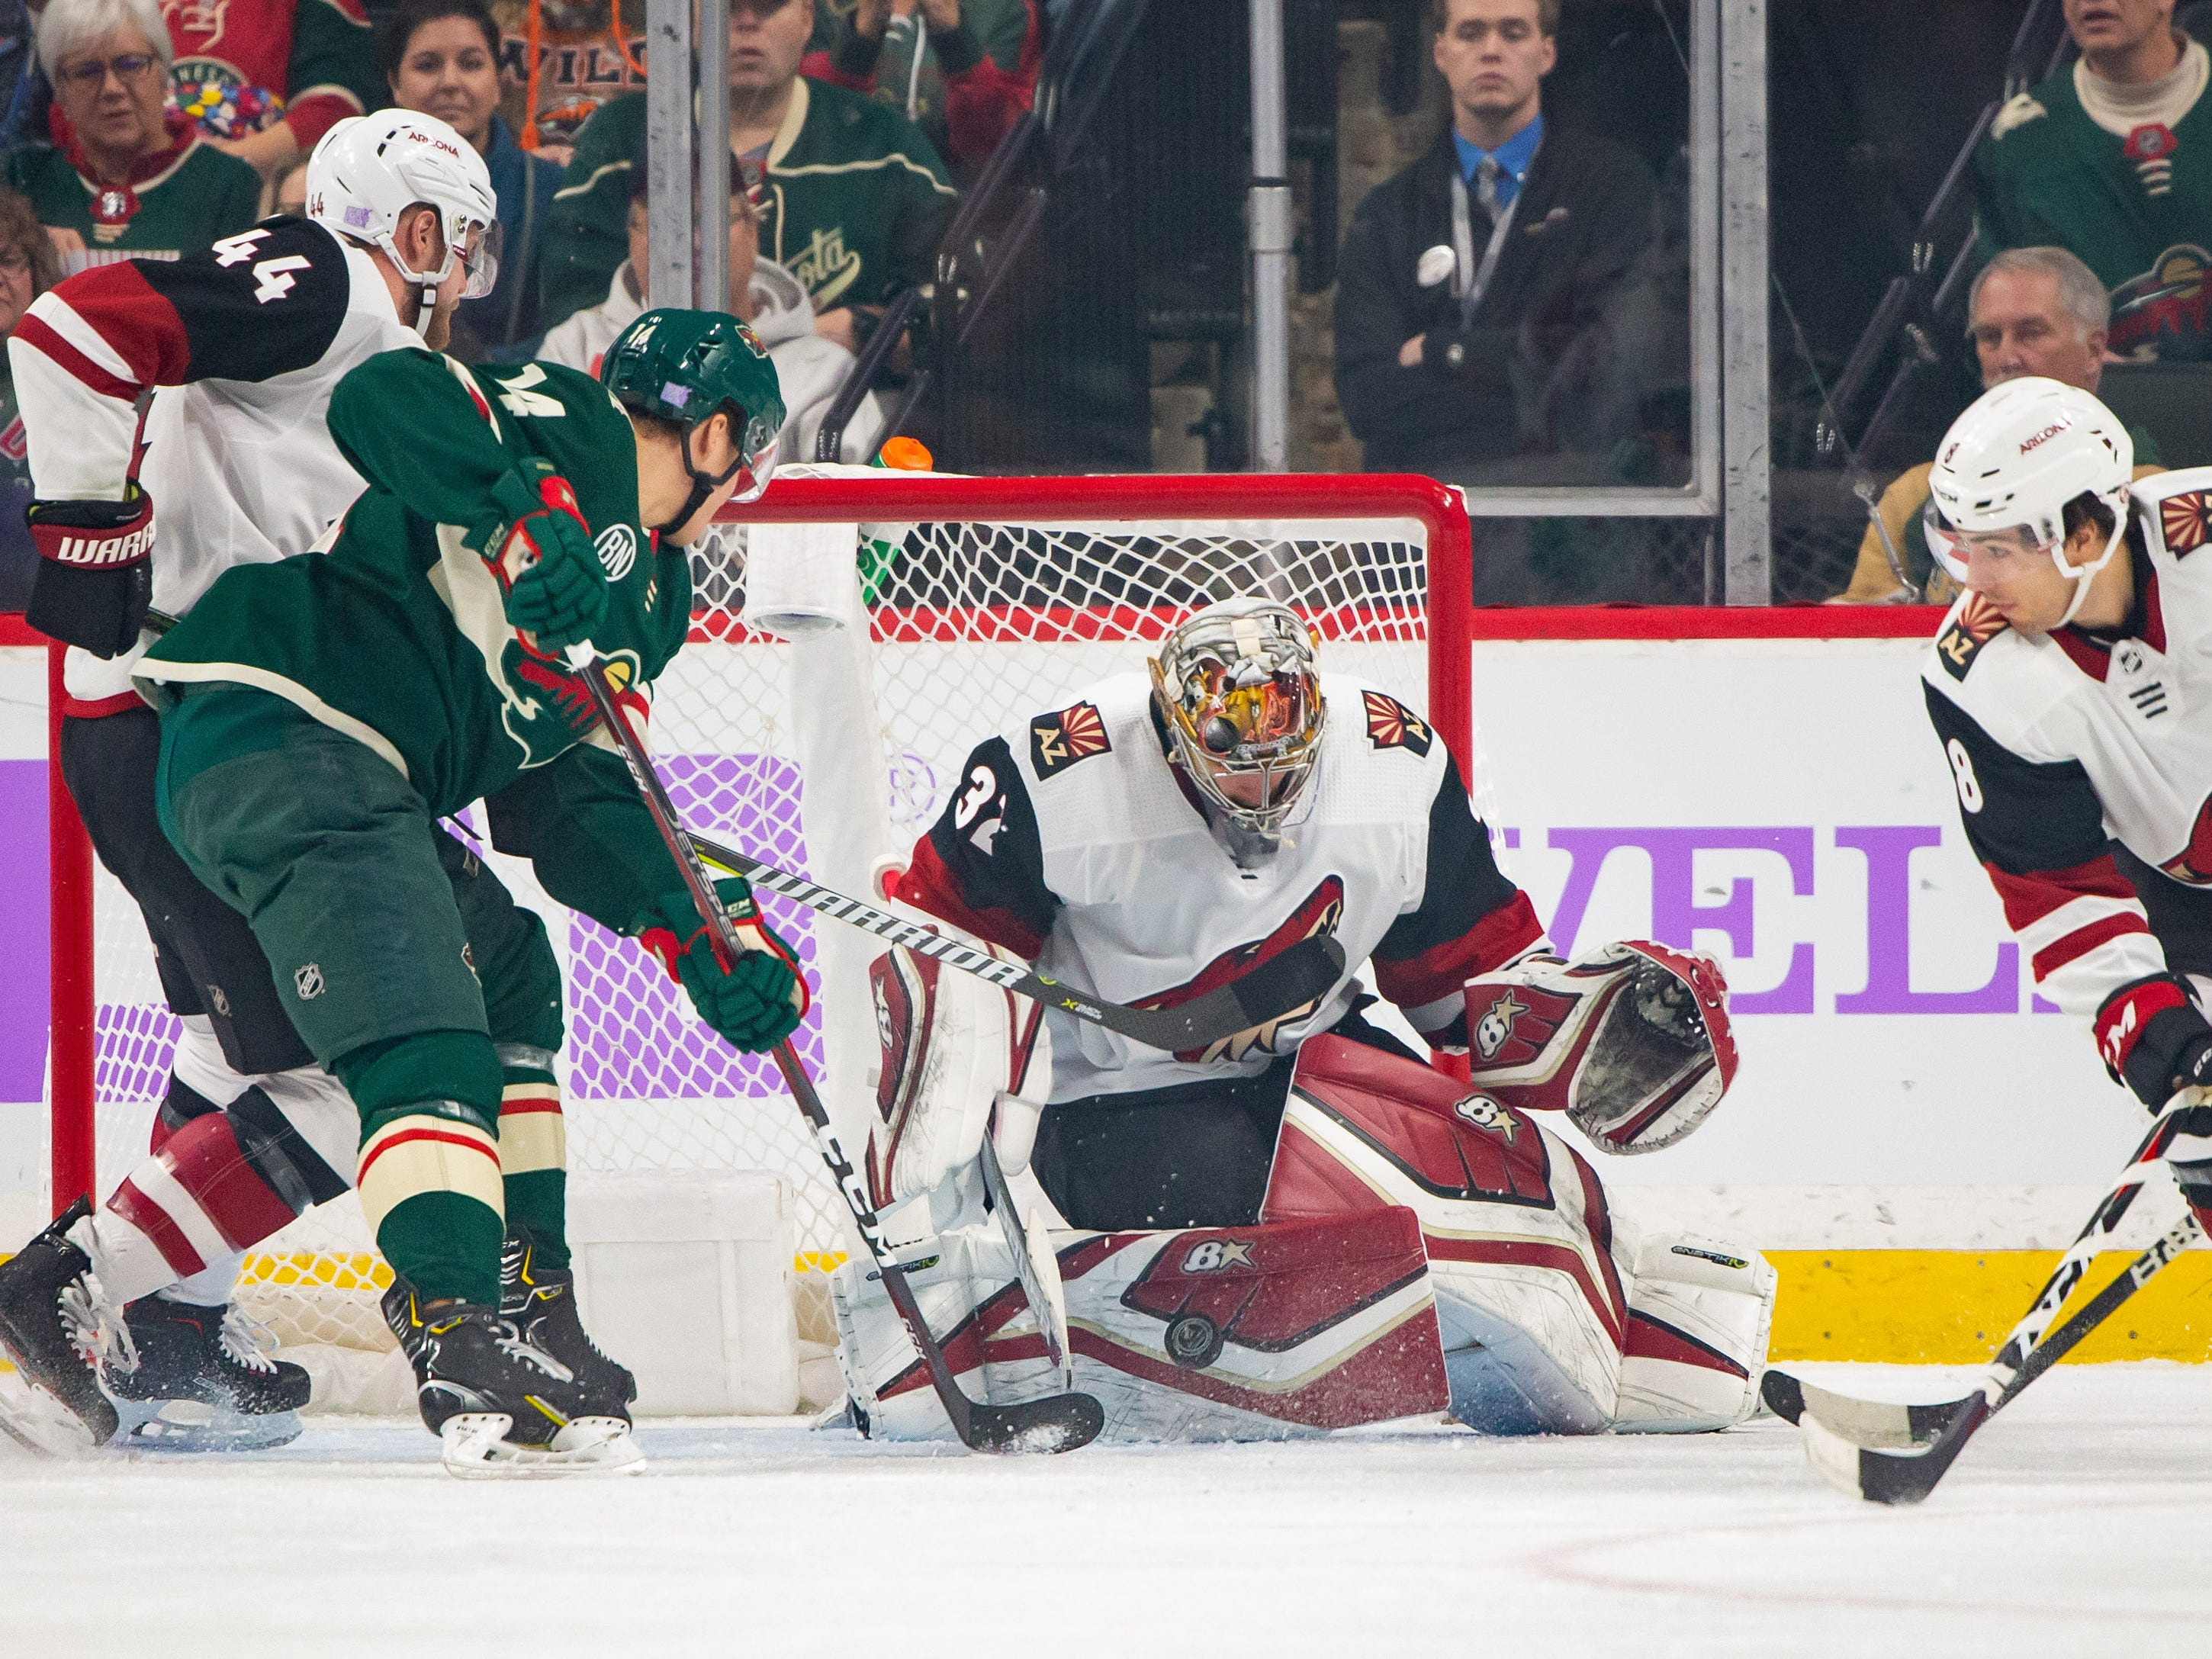 Nov 27, 2018; Saint Paul, MN, USA; Phoenix Coyotes goalie Antti Raanta (32) makes a save in the first period against Minnesota Wild at Xcel Energy Center. Mandatory Credit: Brad Rempel-USA TODAY Sports